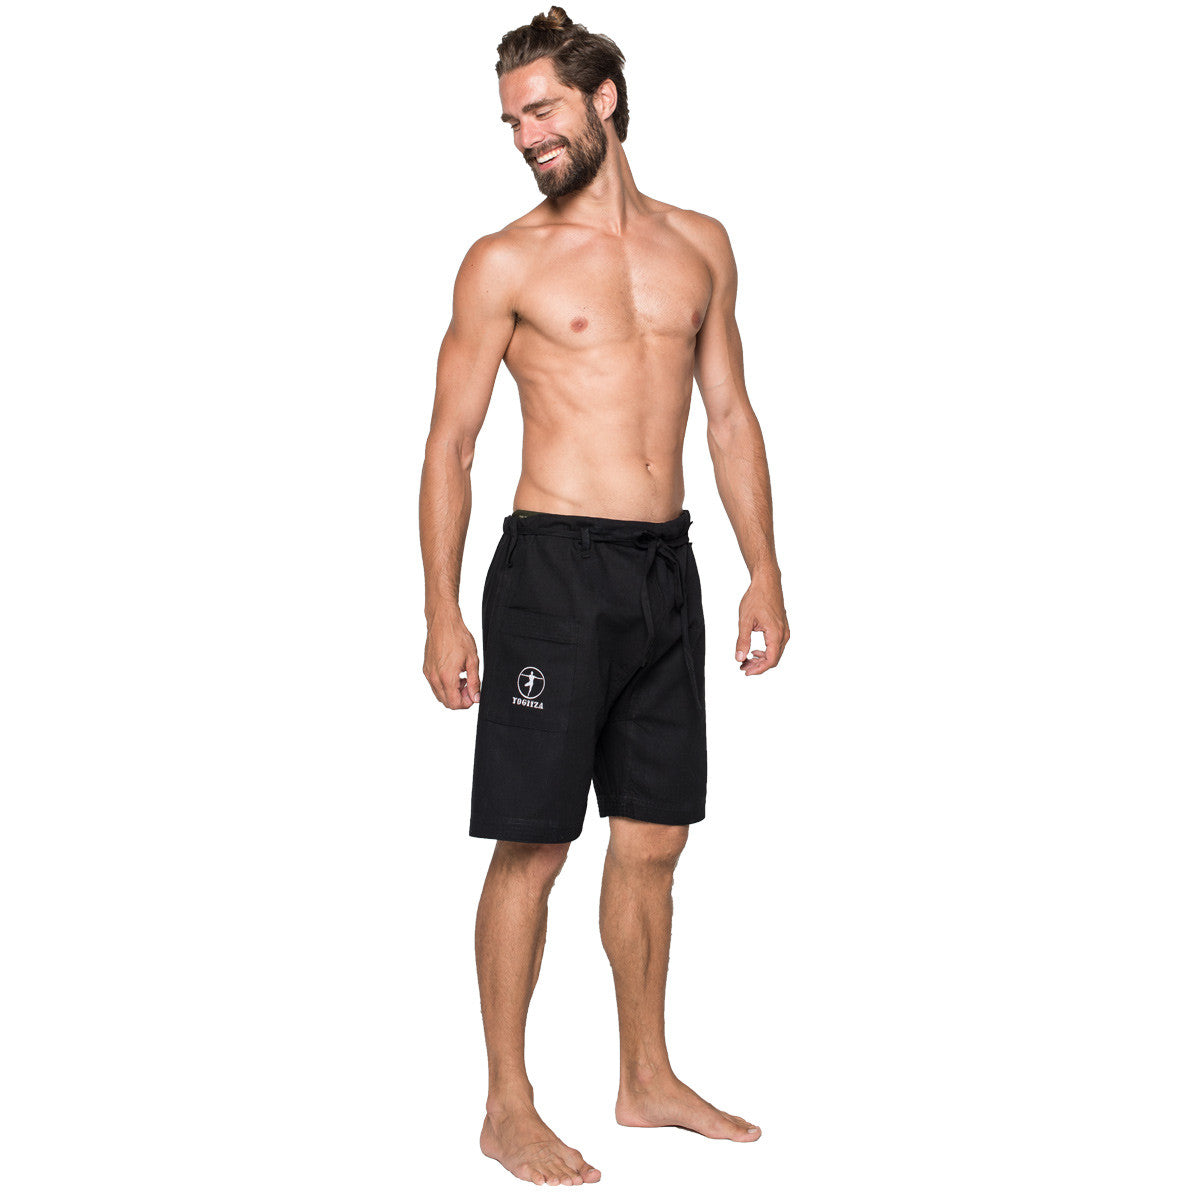 Watch The 5 Best Yoga Shorts for Men to Buy in 2019 video